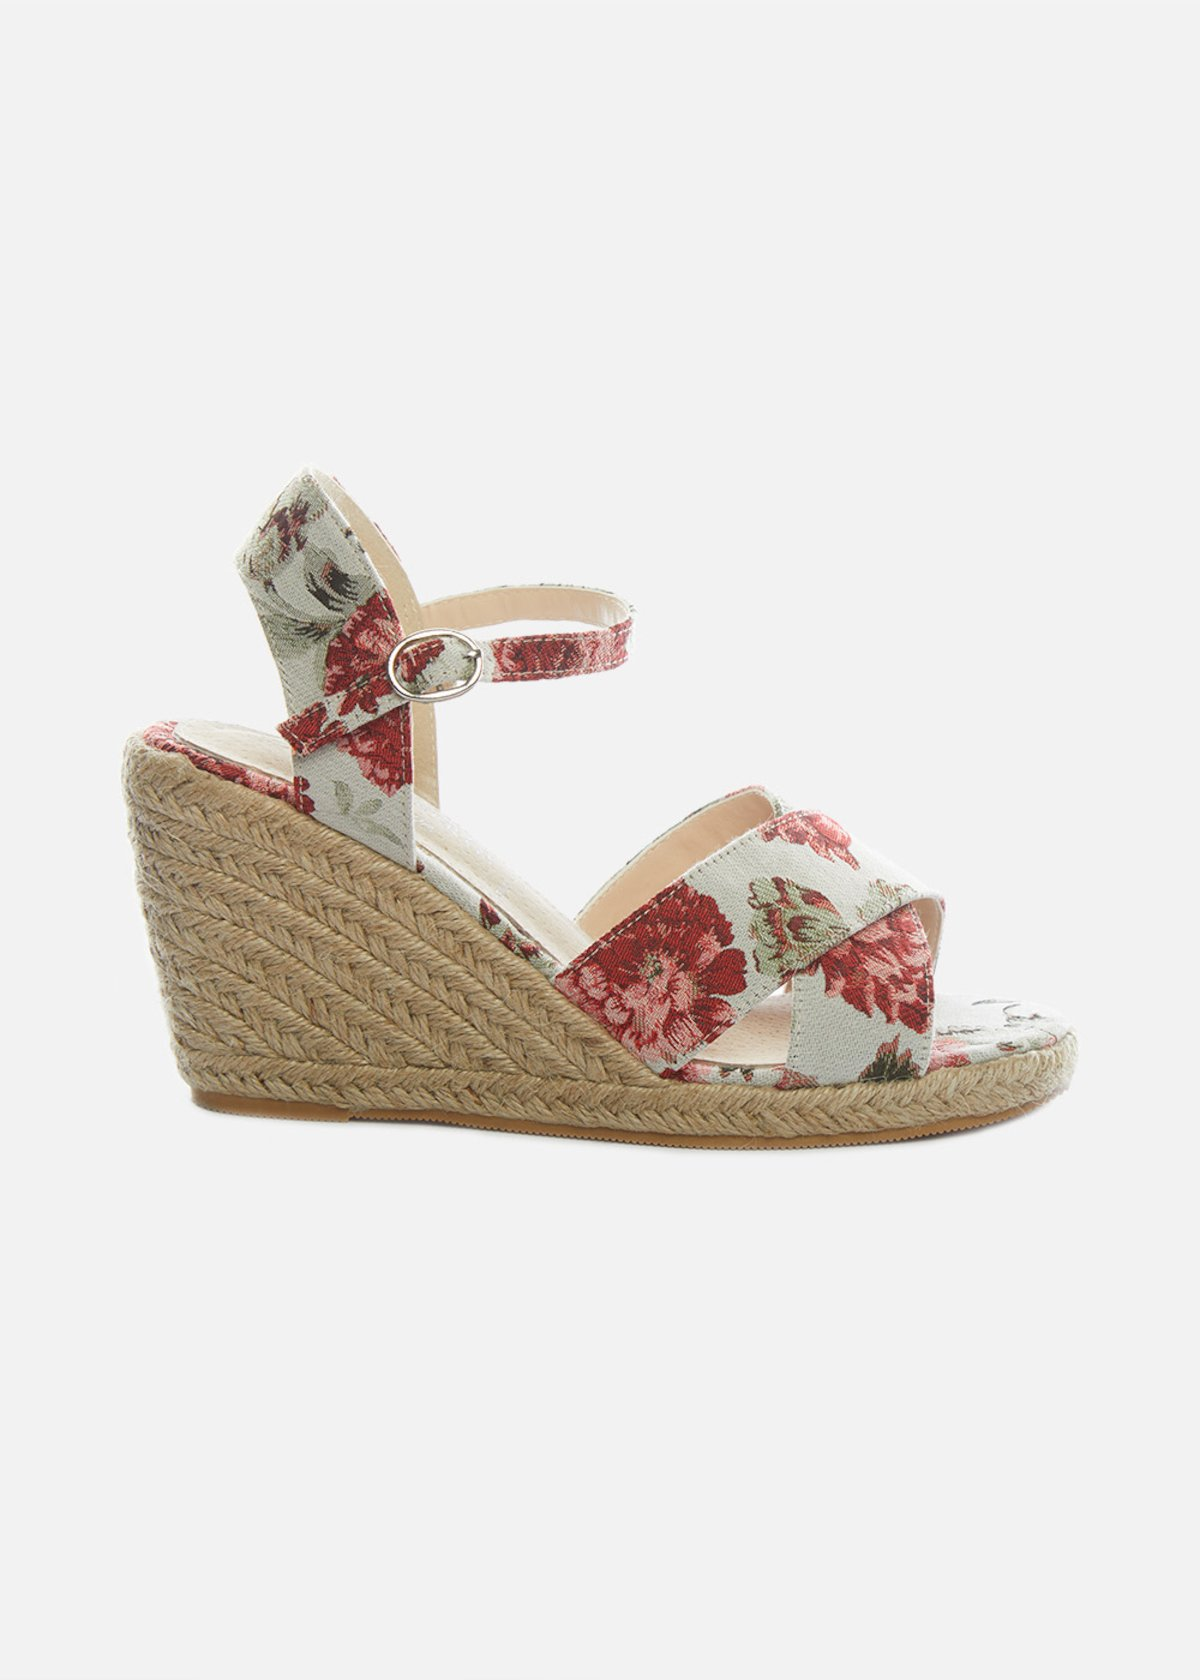 Straw wedge and floral design Simoa sandals